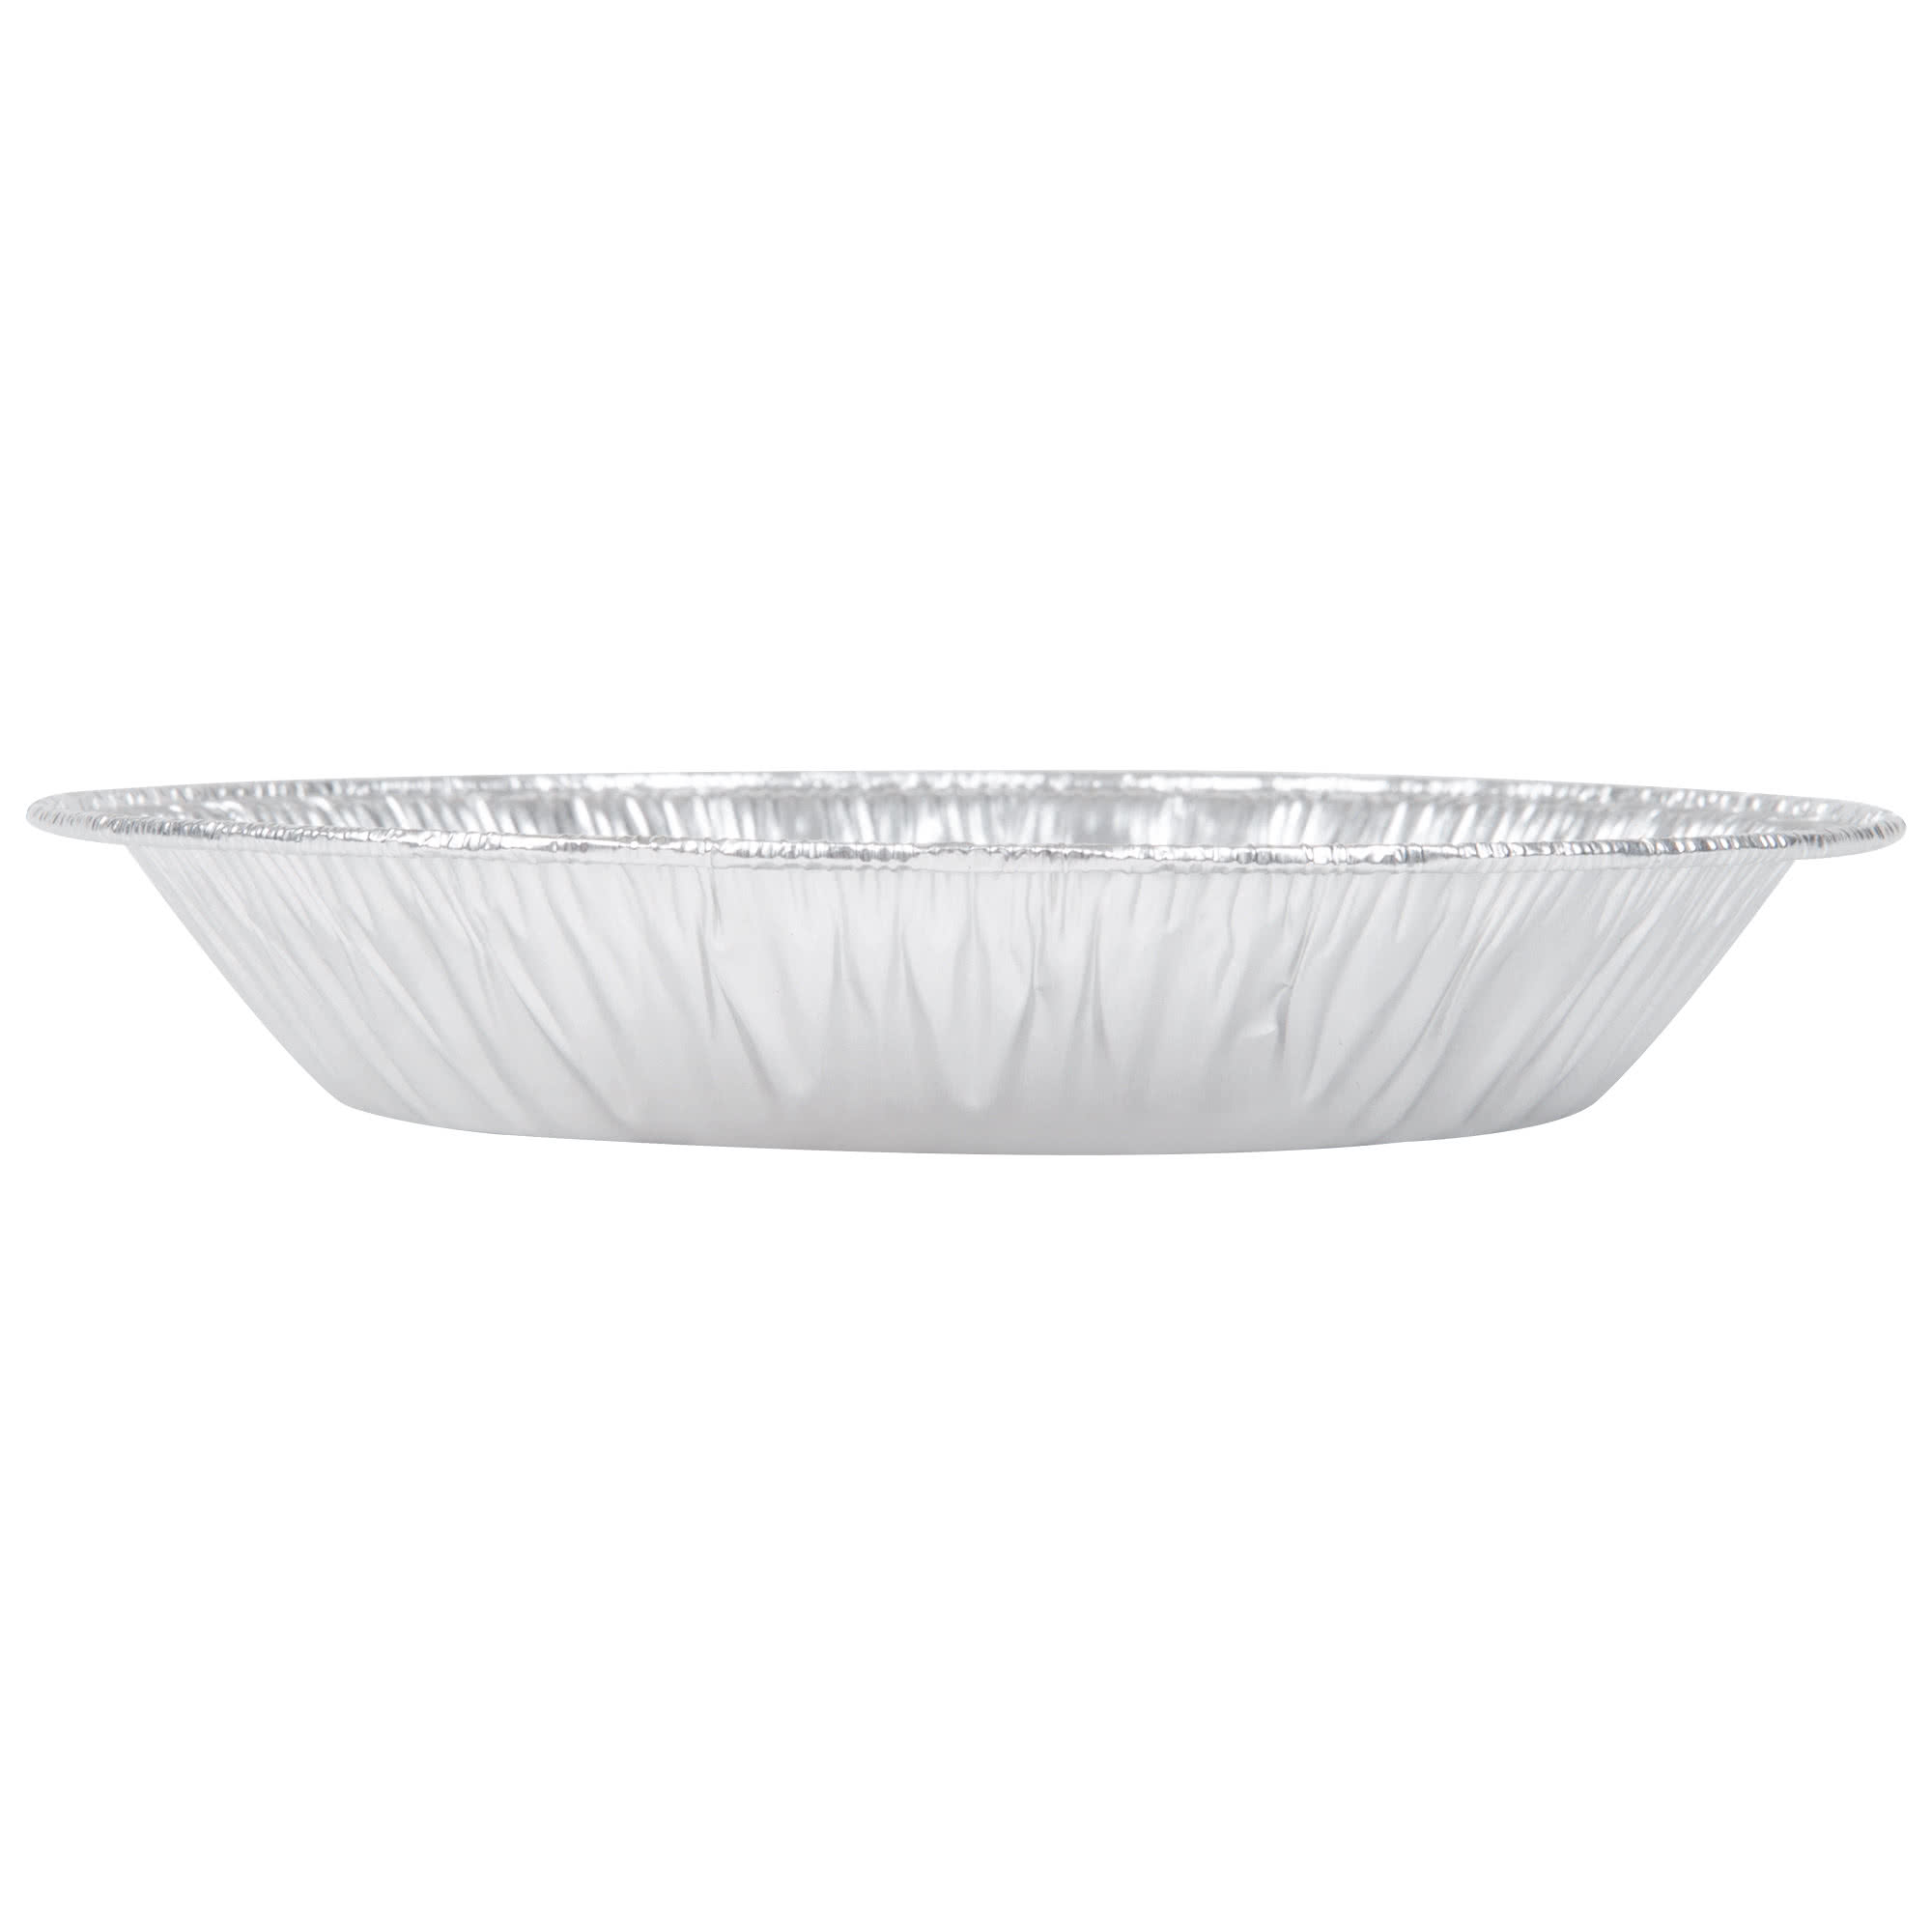 "11600 6"" x 2"" Shallow Foil Pie Pan 1000 Case By TableTop King by TableTop King"